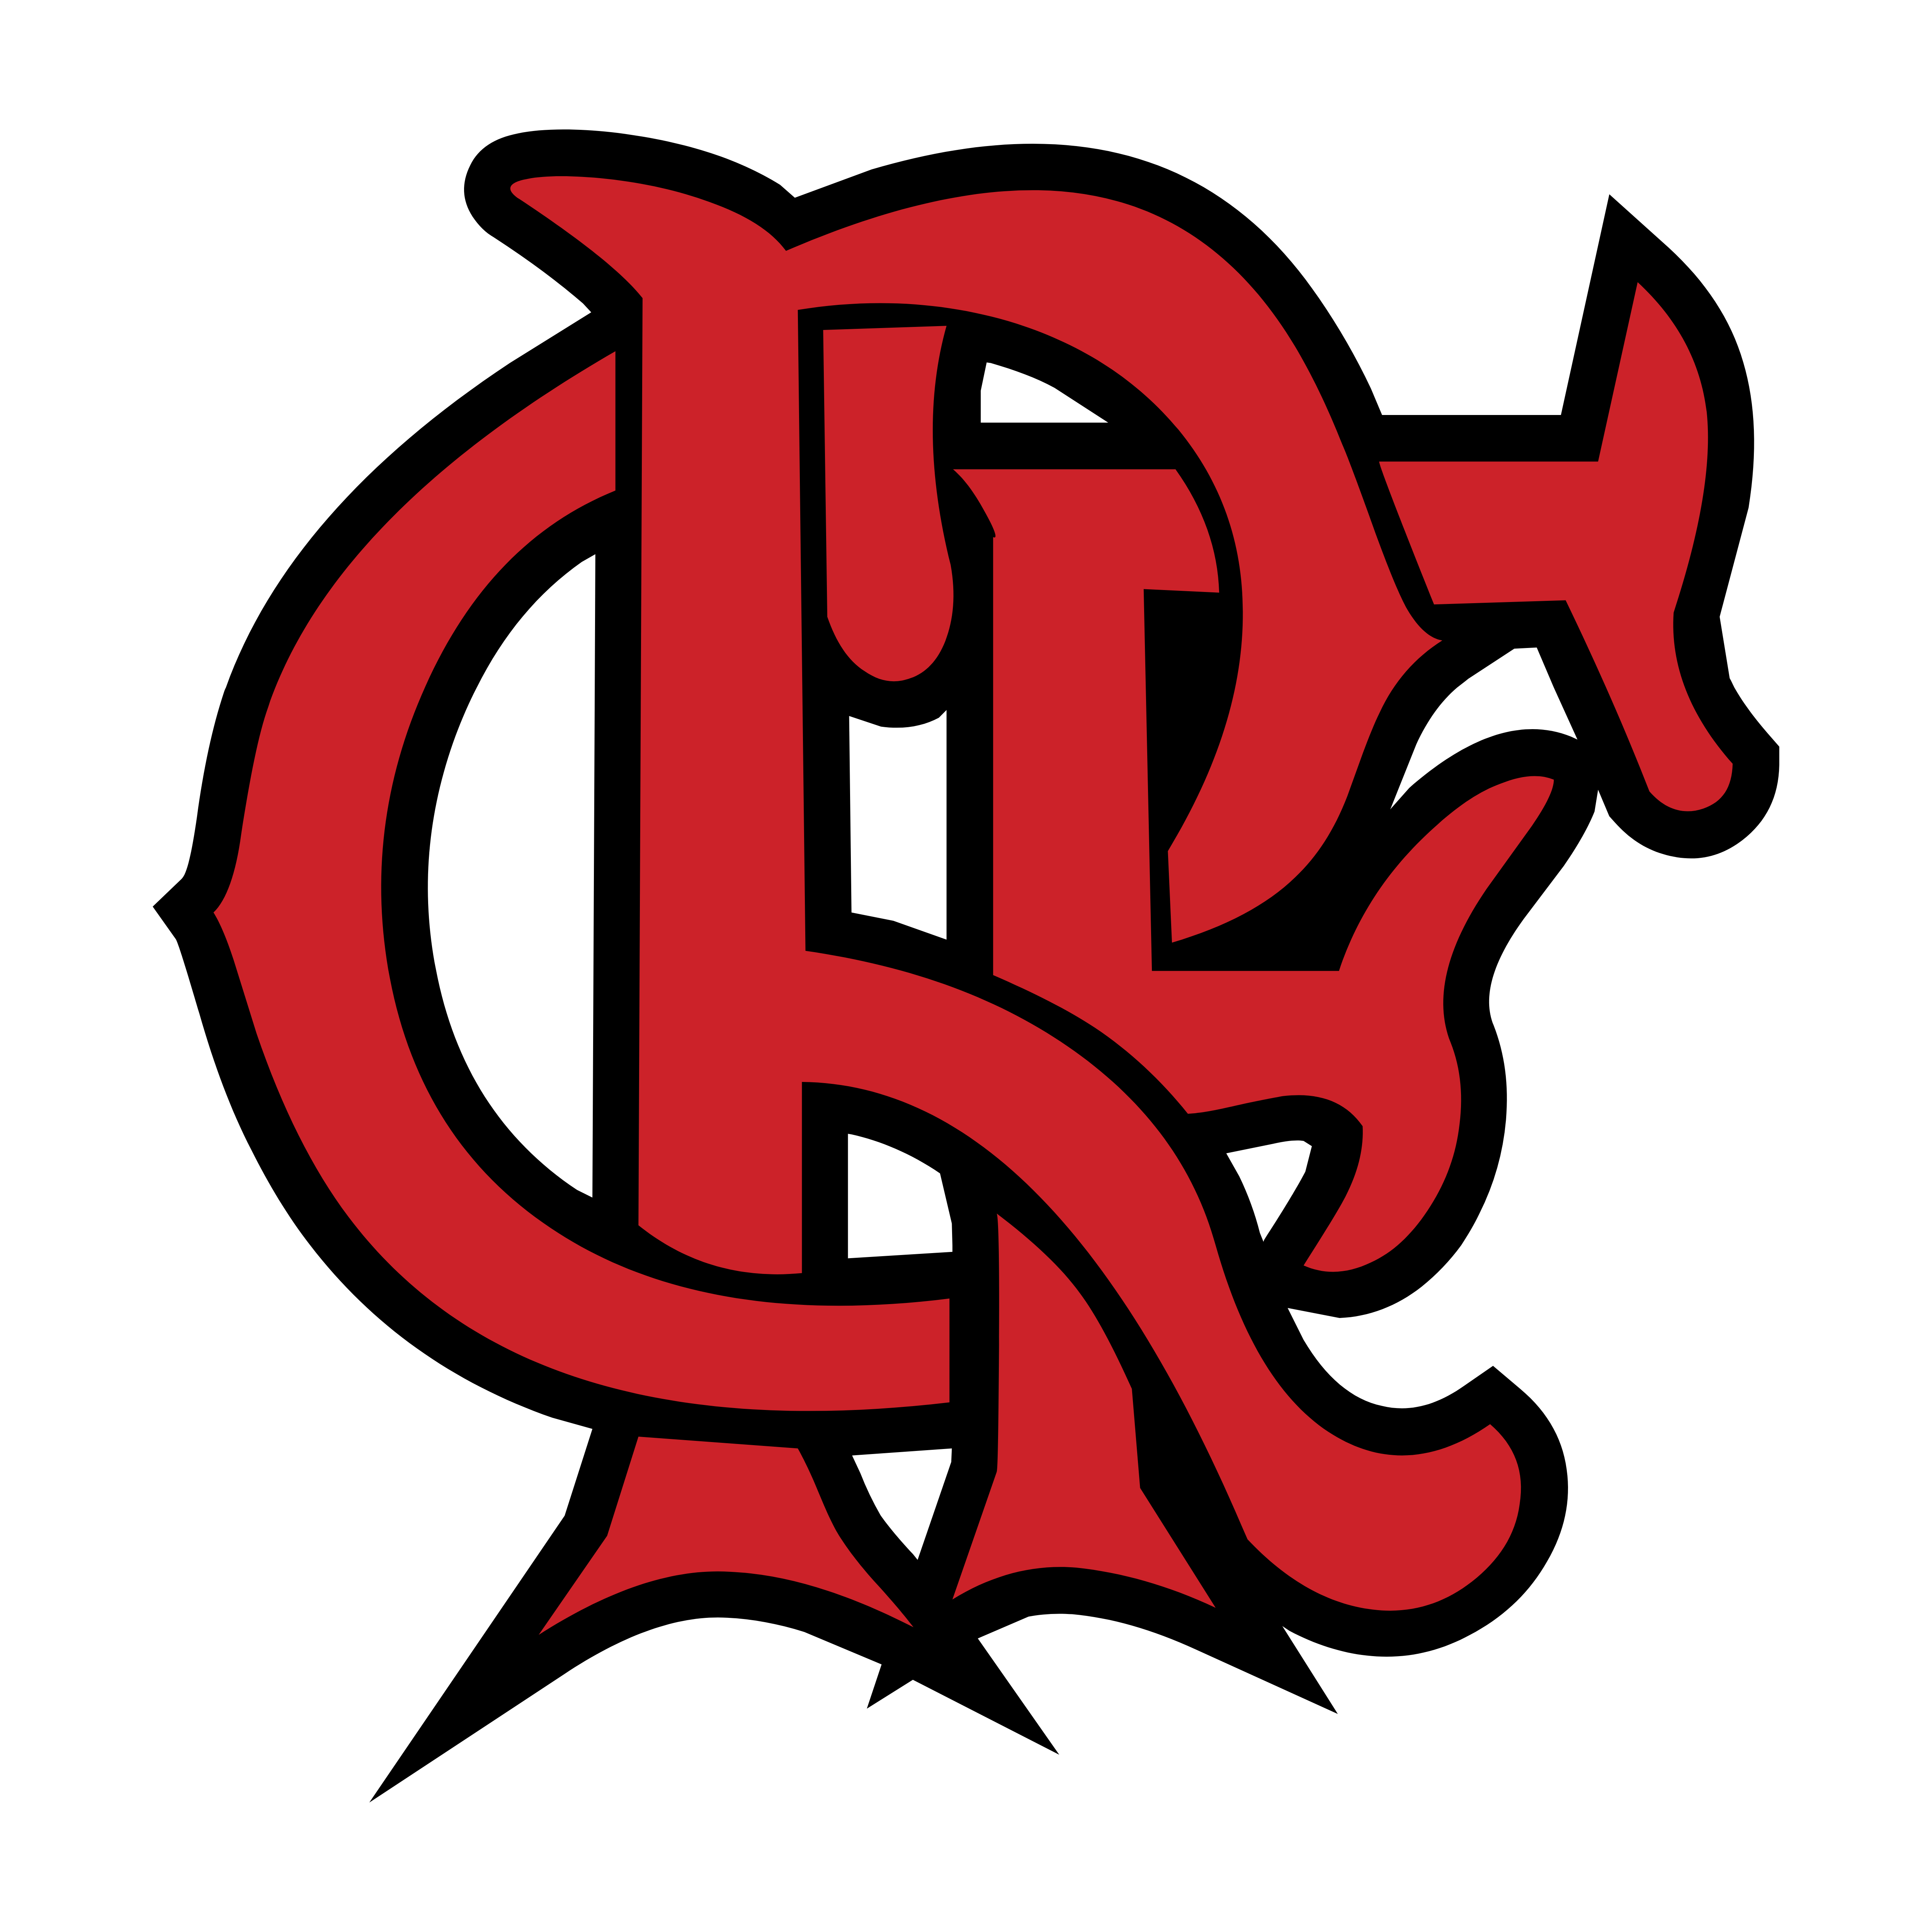 Clube Regatas Flamengo Logos Download